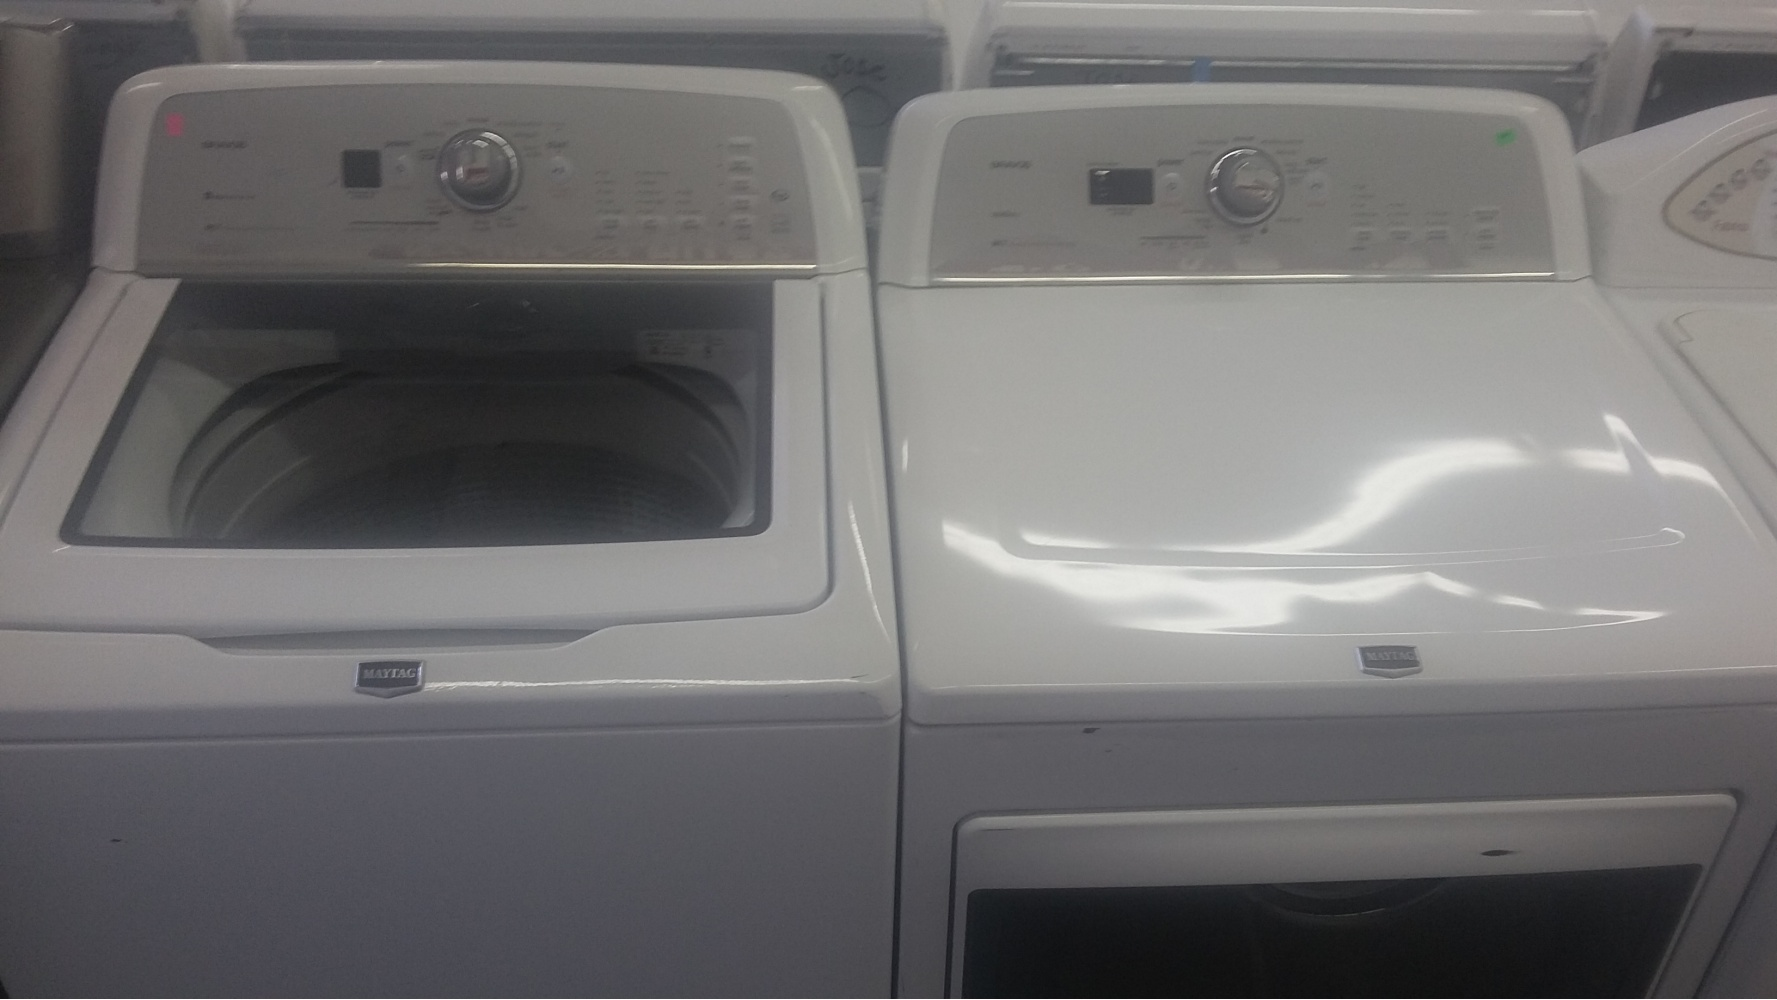 Maytag Bravos High Efficiency Top Load Washer W Gas Dryer